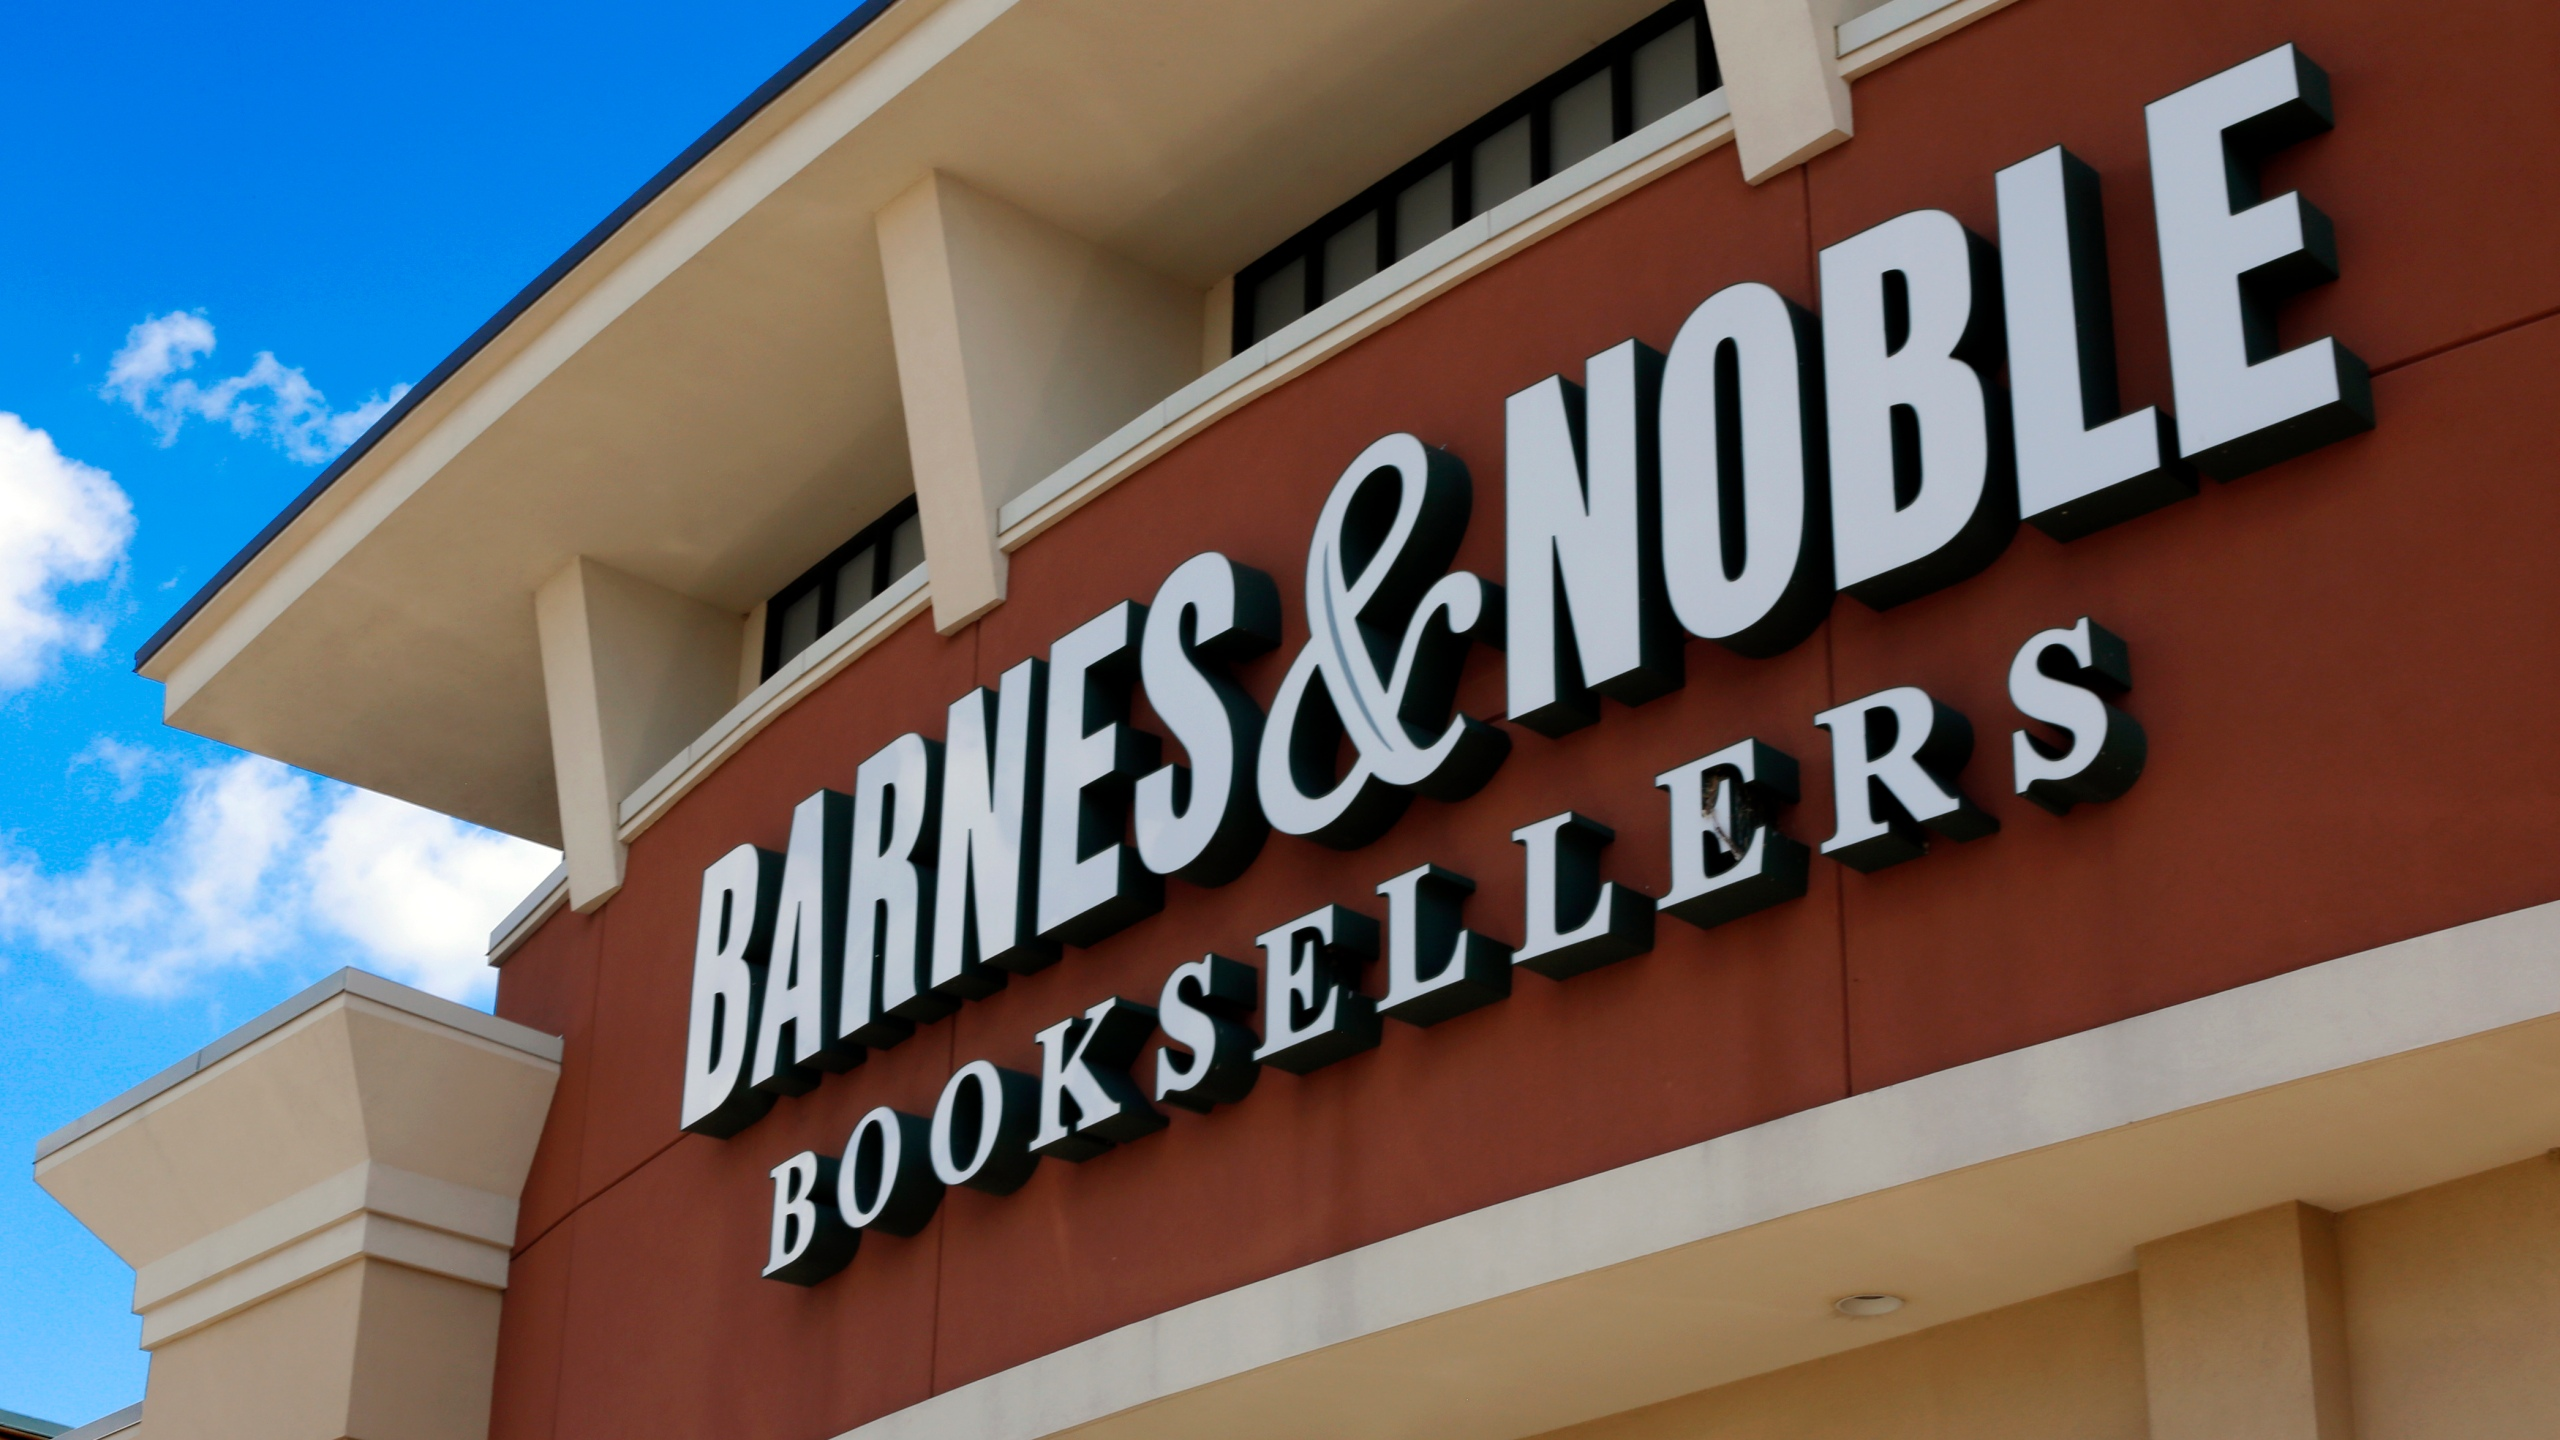 Barnes_and_Noble_Holiday_Sales_82892-159532.jpg71542878